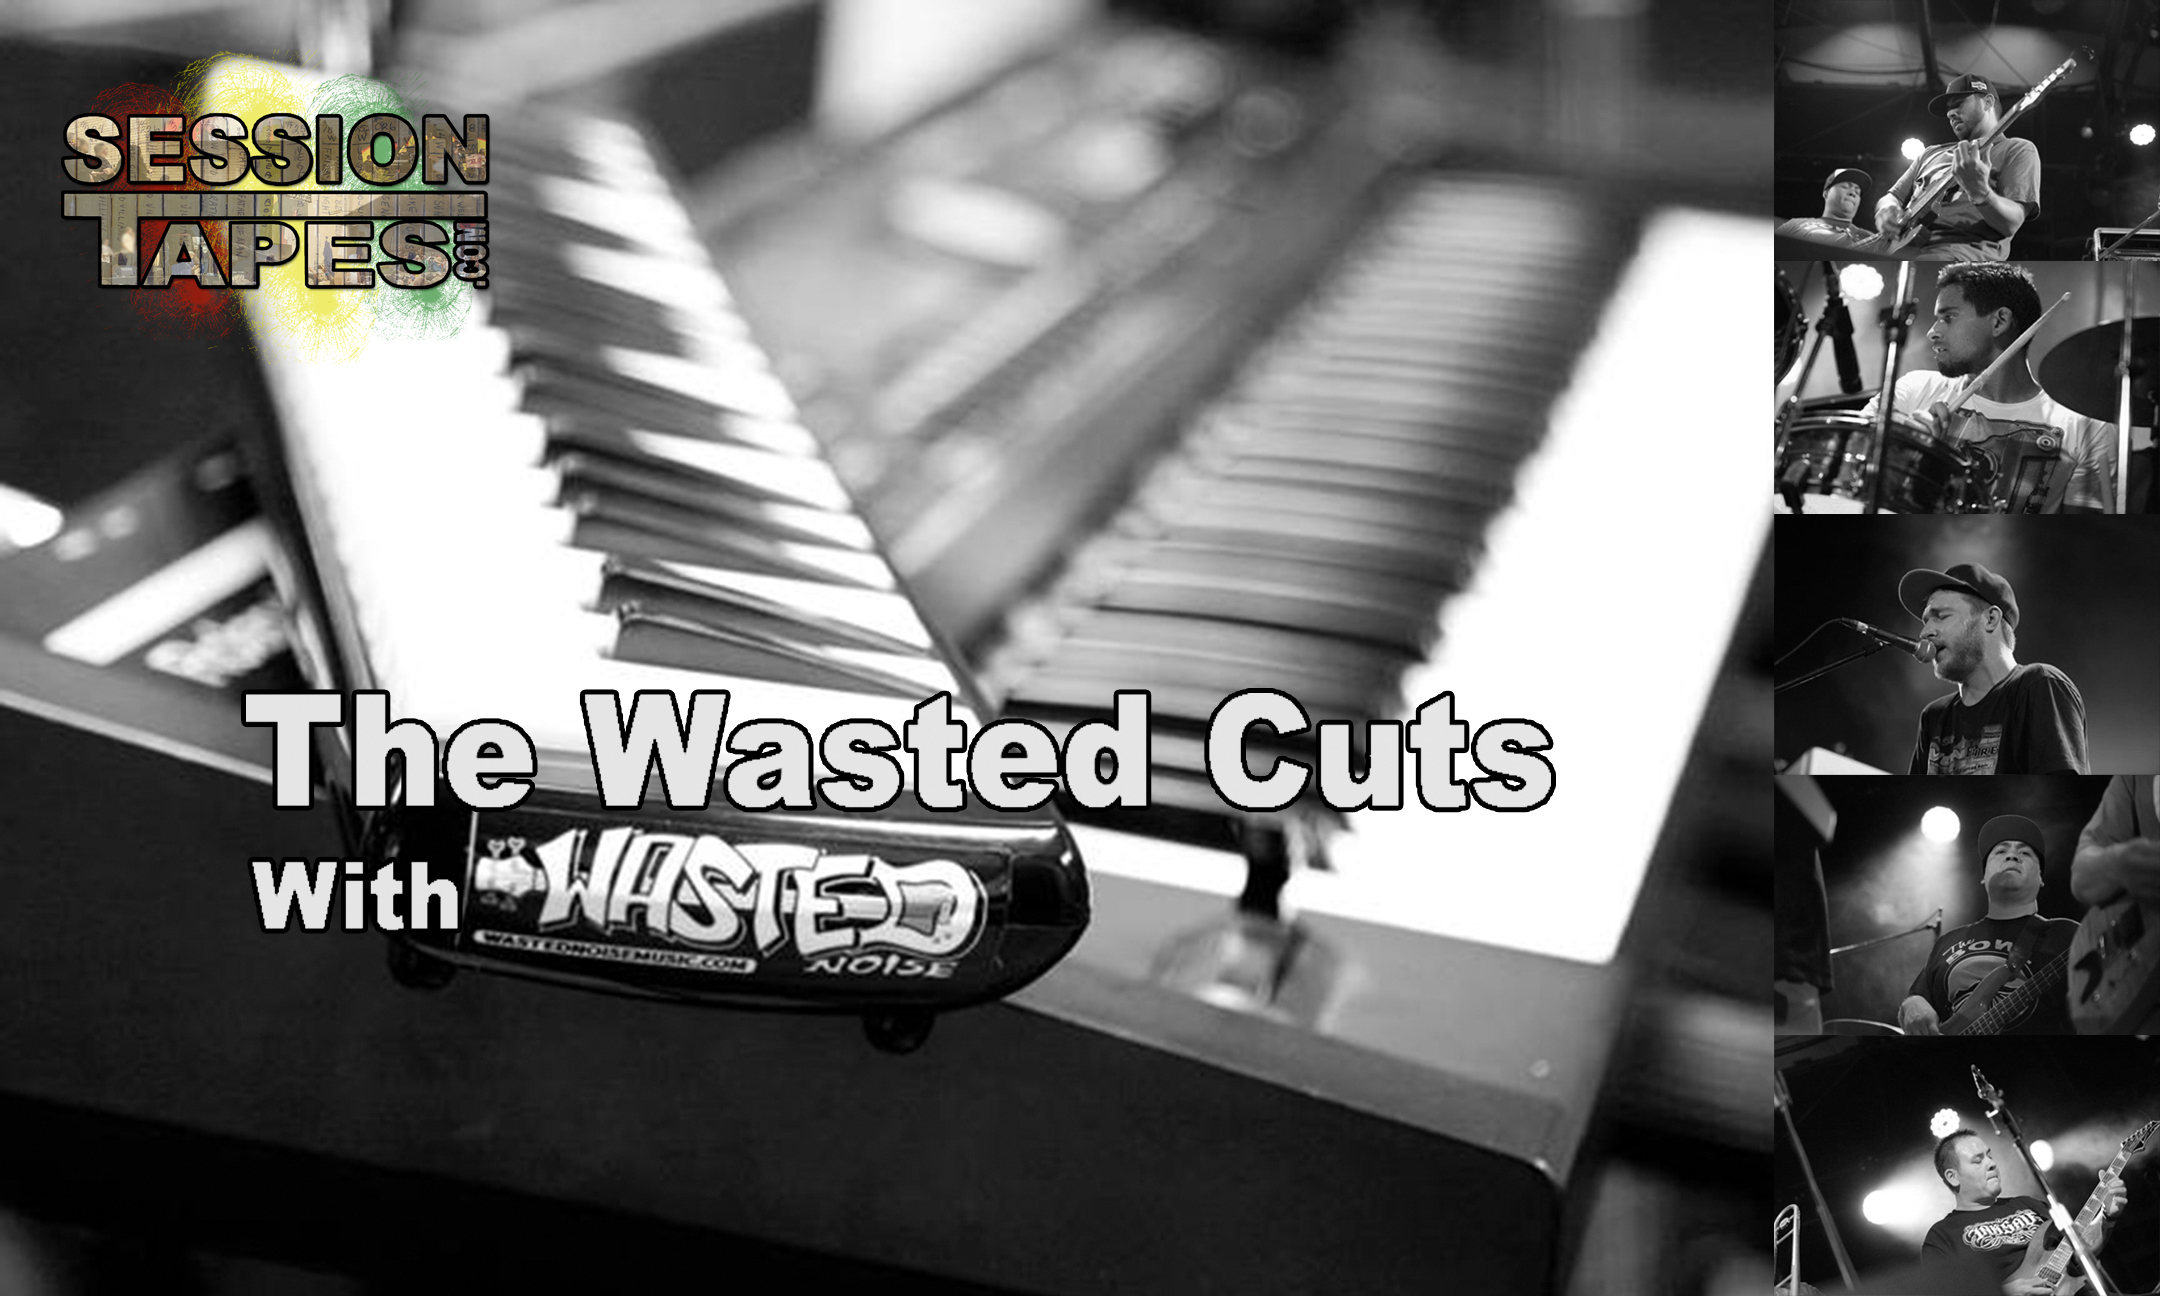 The Wasted Cuts with Wasted Noise